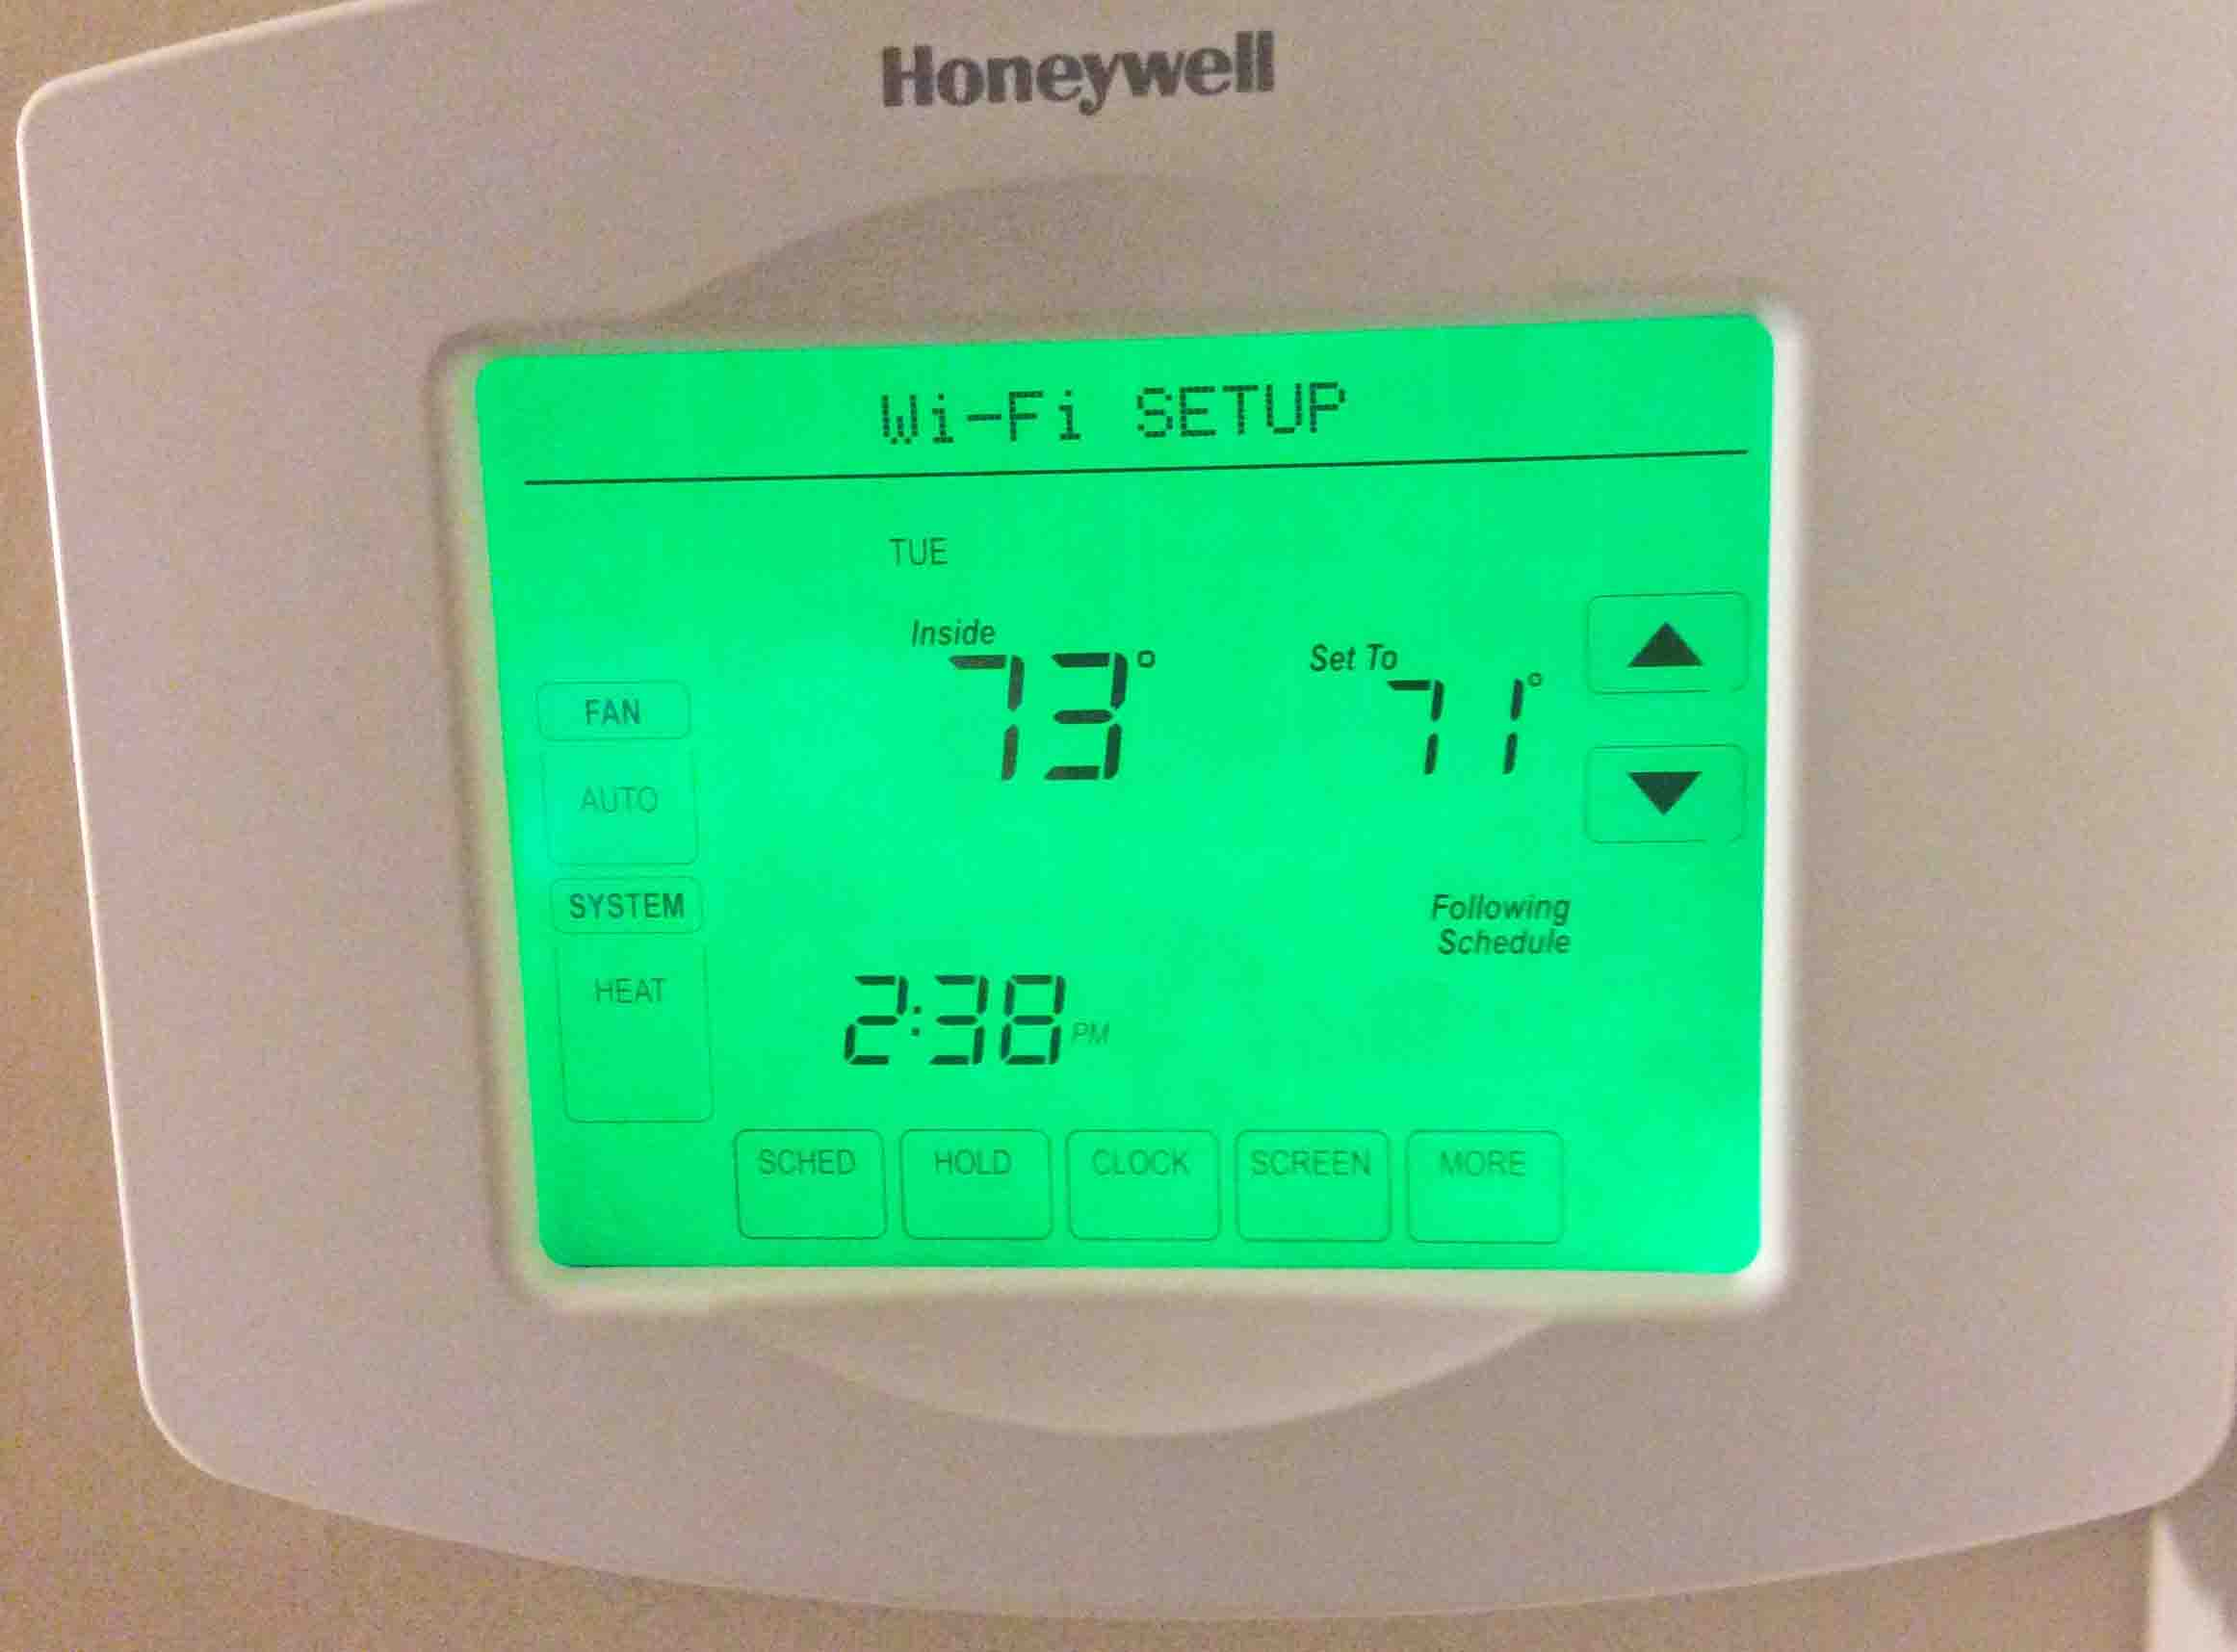 Change Wireless Network On Honeywell Wifi Thermostat Rth8580wf Air Conditioner Picture Of The Screen Display In Wi Fi Setup